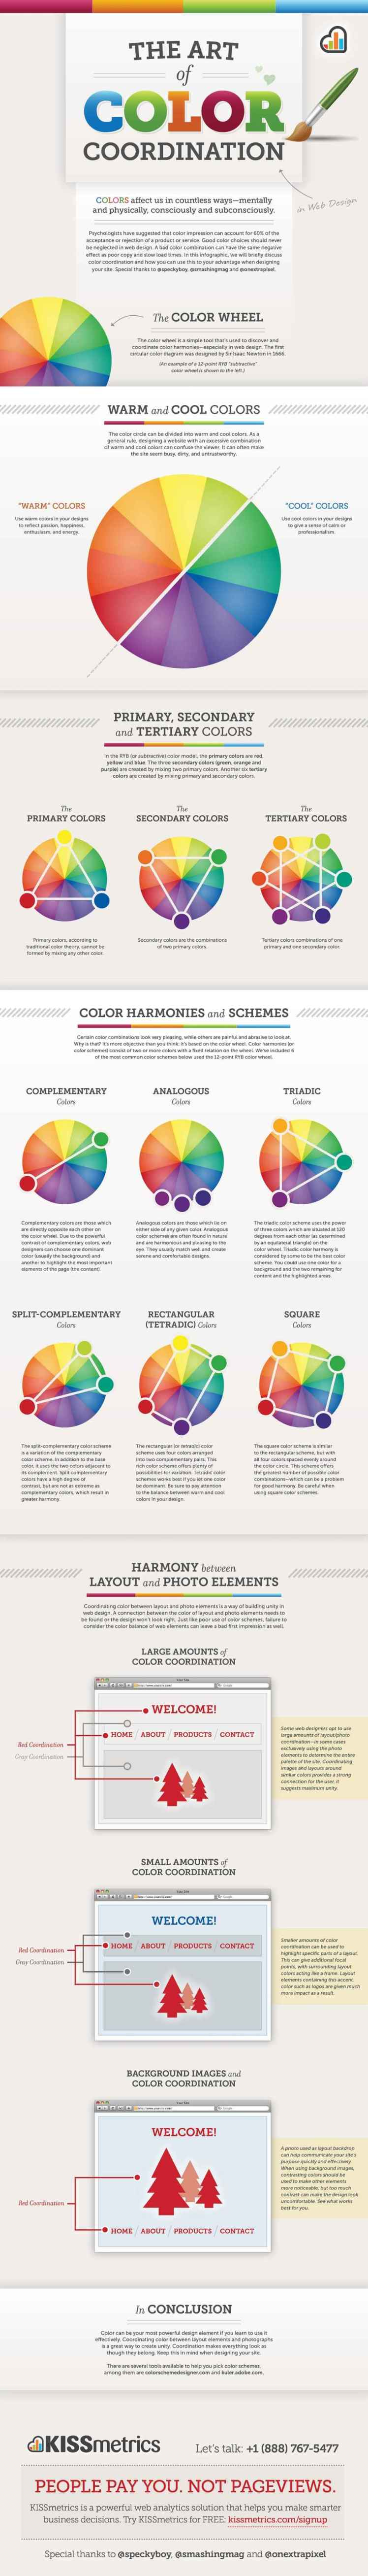 TheUltraLinx: http://theultralinx.com/2012/06/art-colour-coordination-infographic/